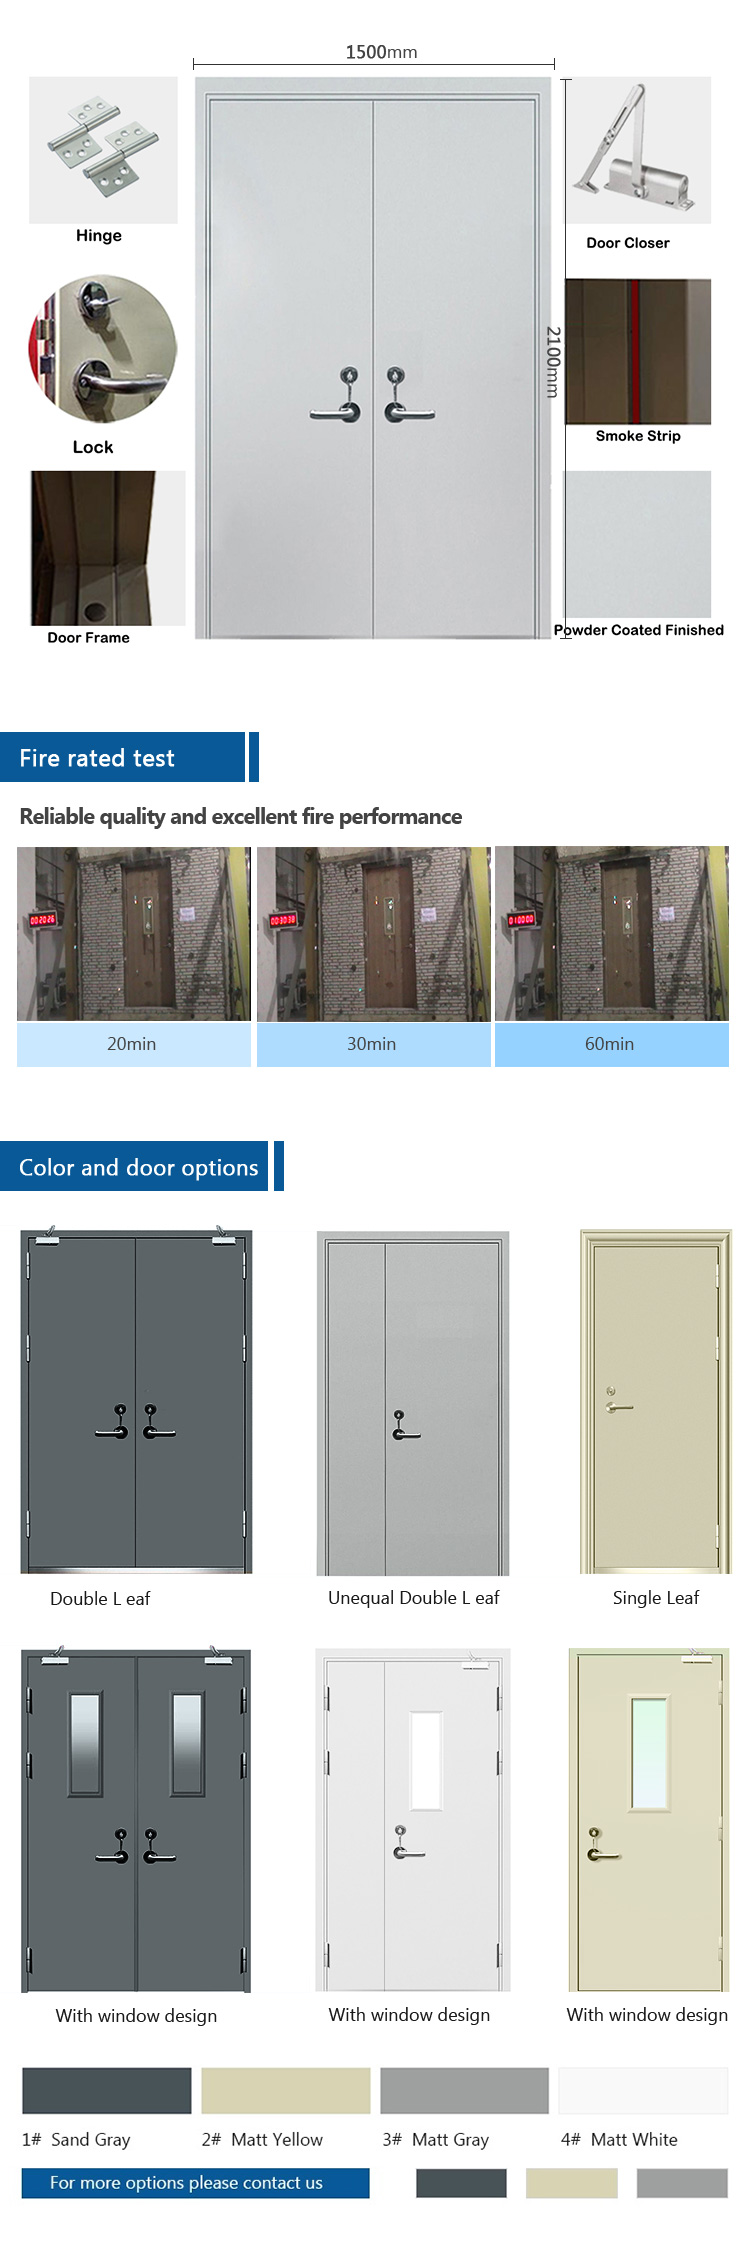 1 hour fire resistant stainless steel interior fire rated metal doors